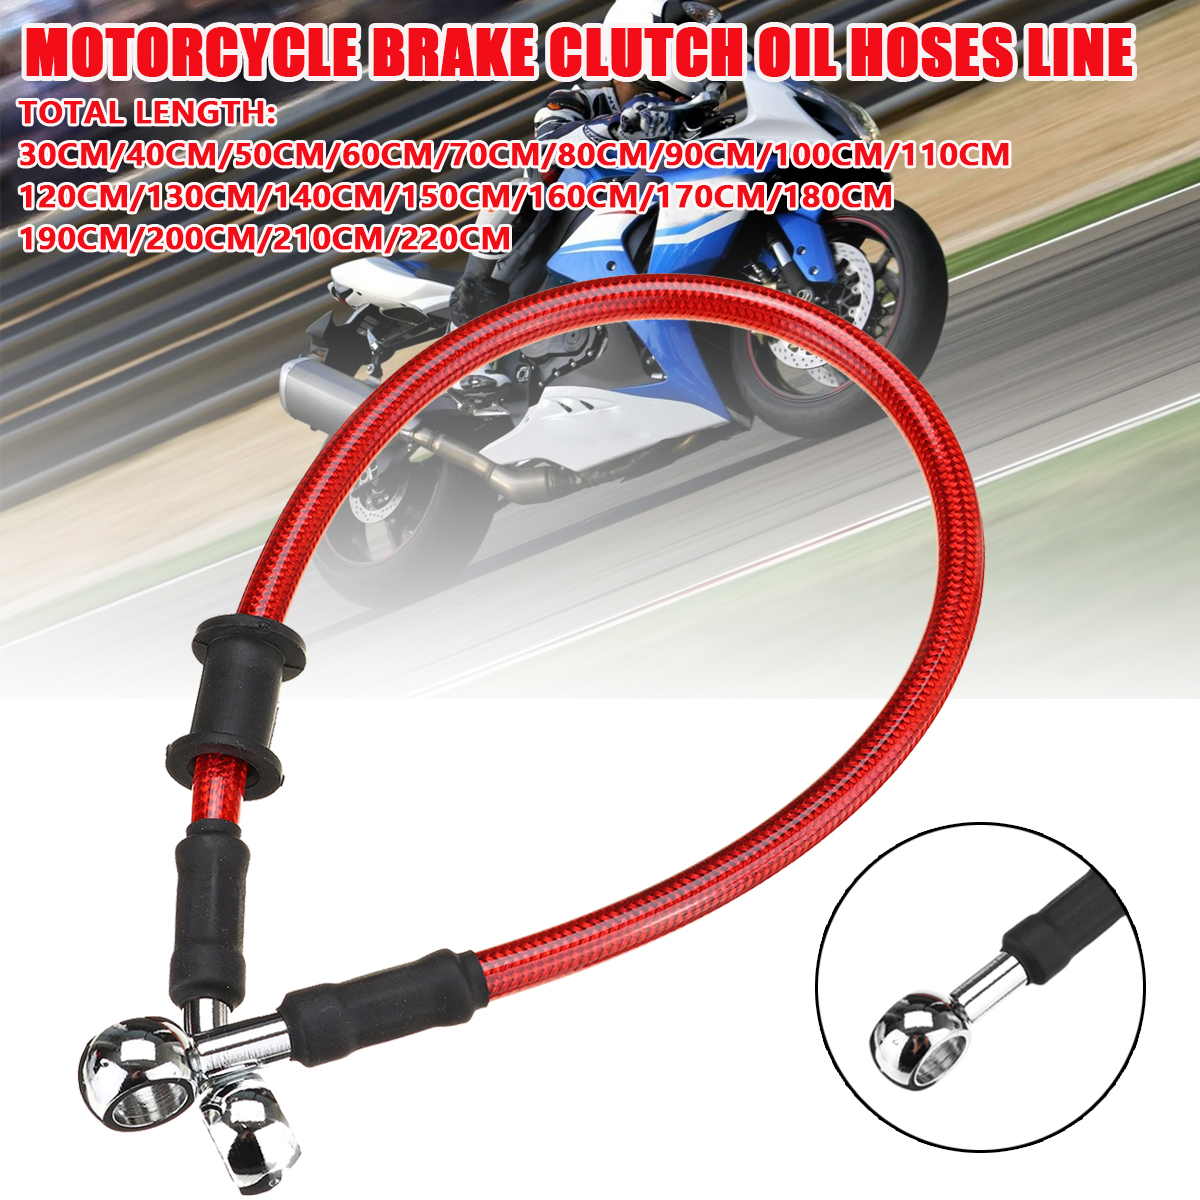 Motorcycle Motorbike Braided Brake Clutch Oil Hose Line Pipe Cable 30cm-220cm